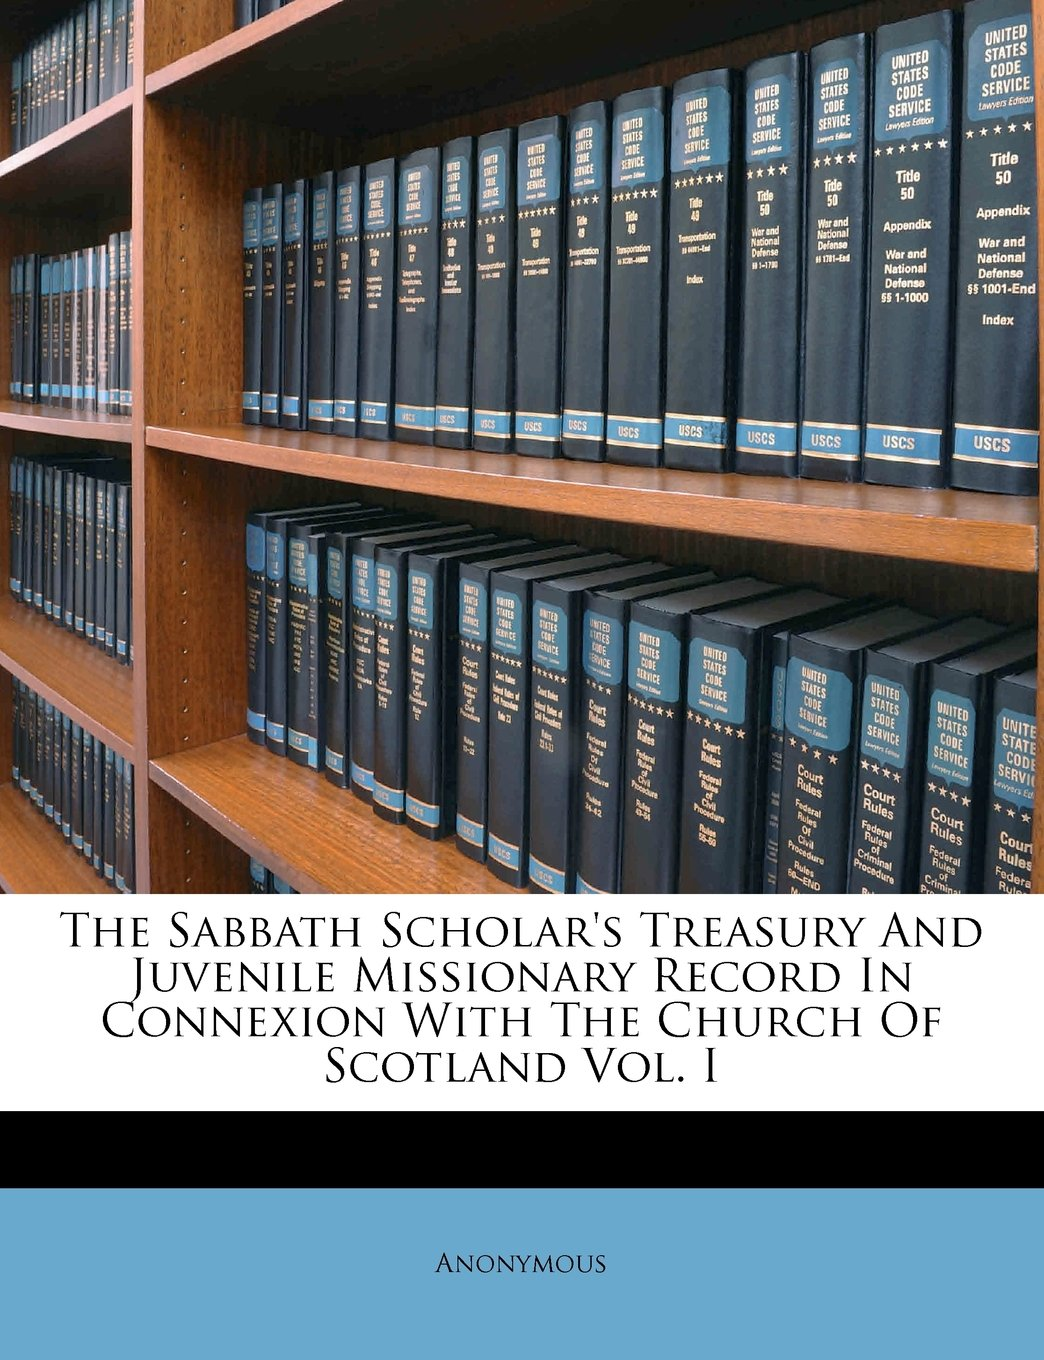 Download The Sabbath Scholar's Treasury And Juvenile Missionary Record In Connexion With The Church Of Scotland Vol. I ebook